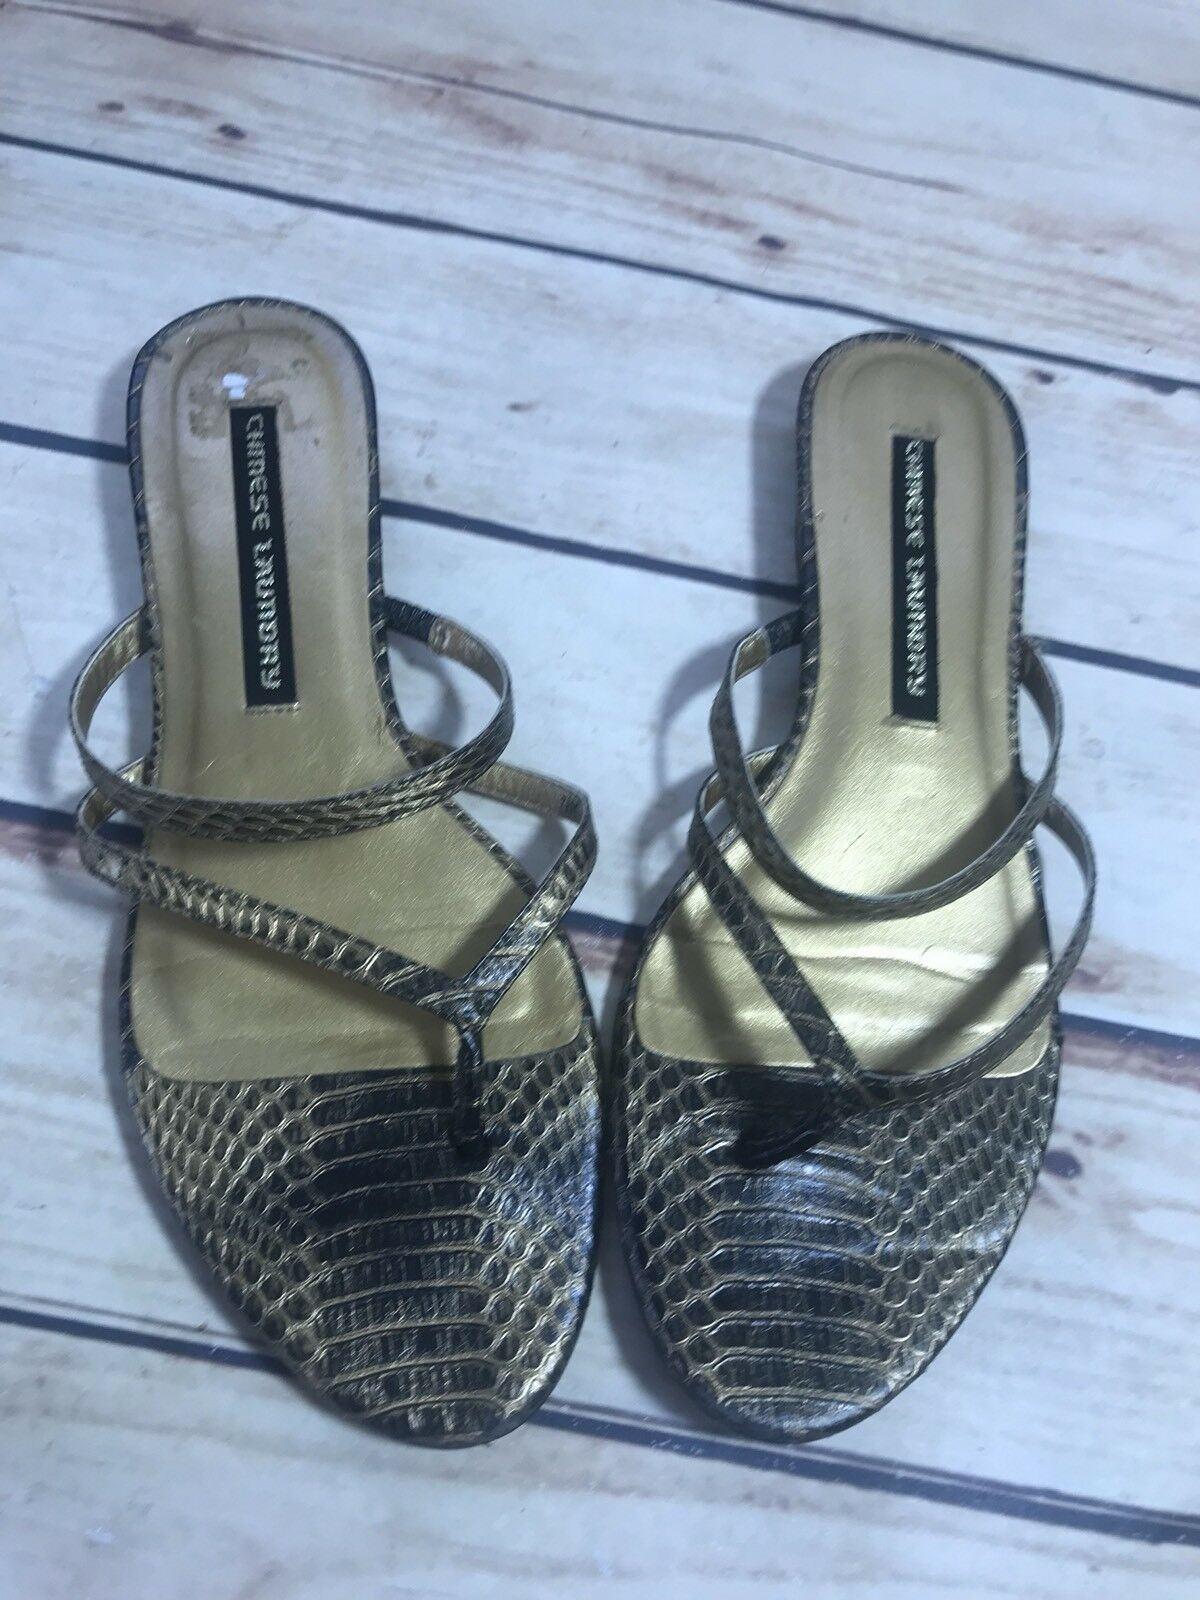 CHINESE LAUNDRY Womens Size 7.5 Flats Gold Animal Print Sandal Flats 7.5 Flip Flop Casual 62d984